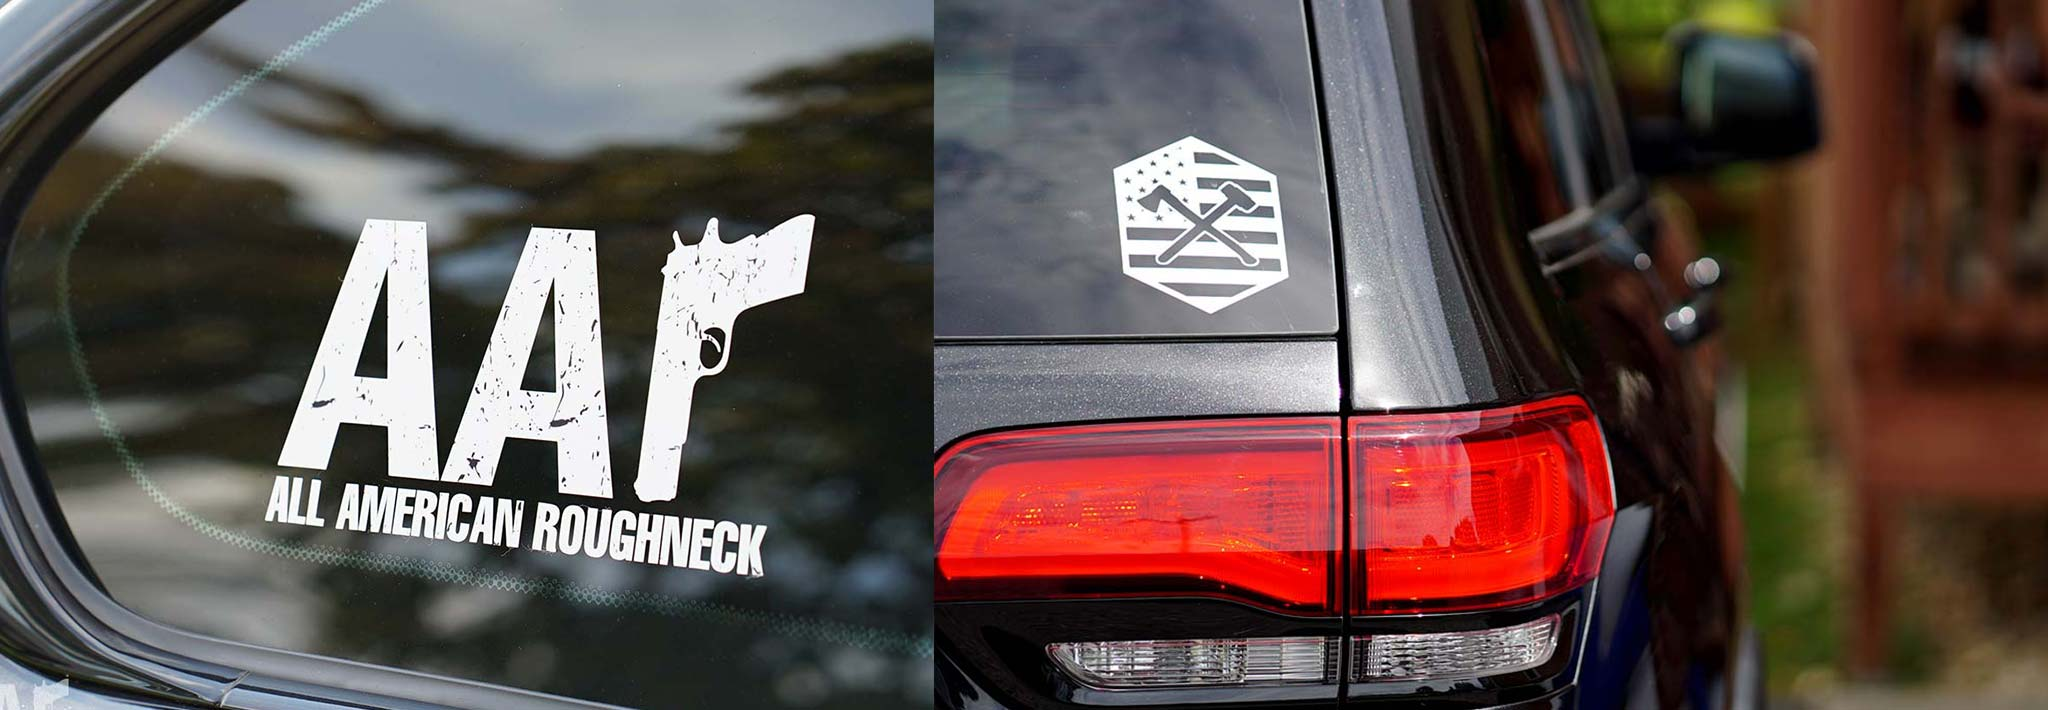 AAR Car Decals